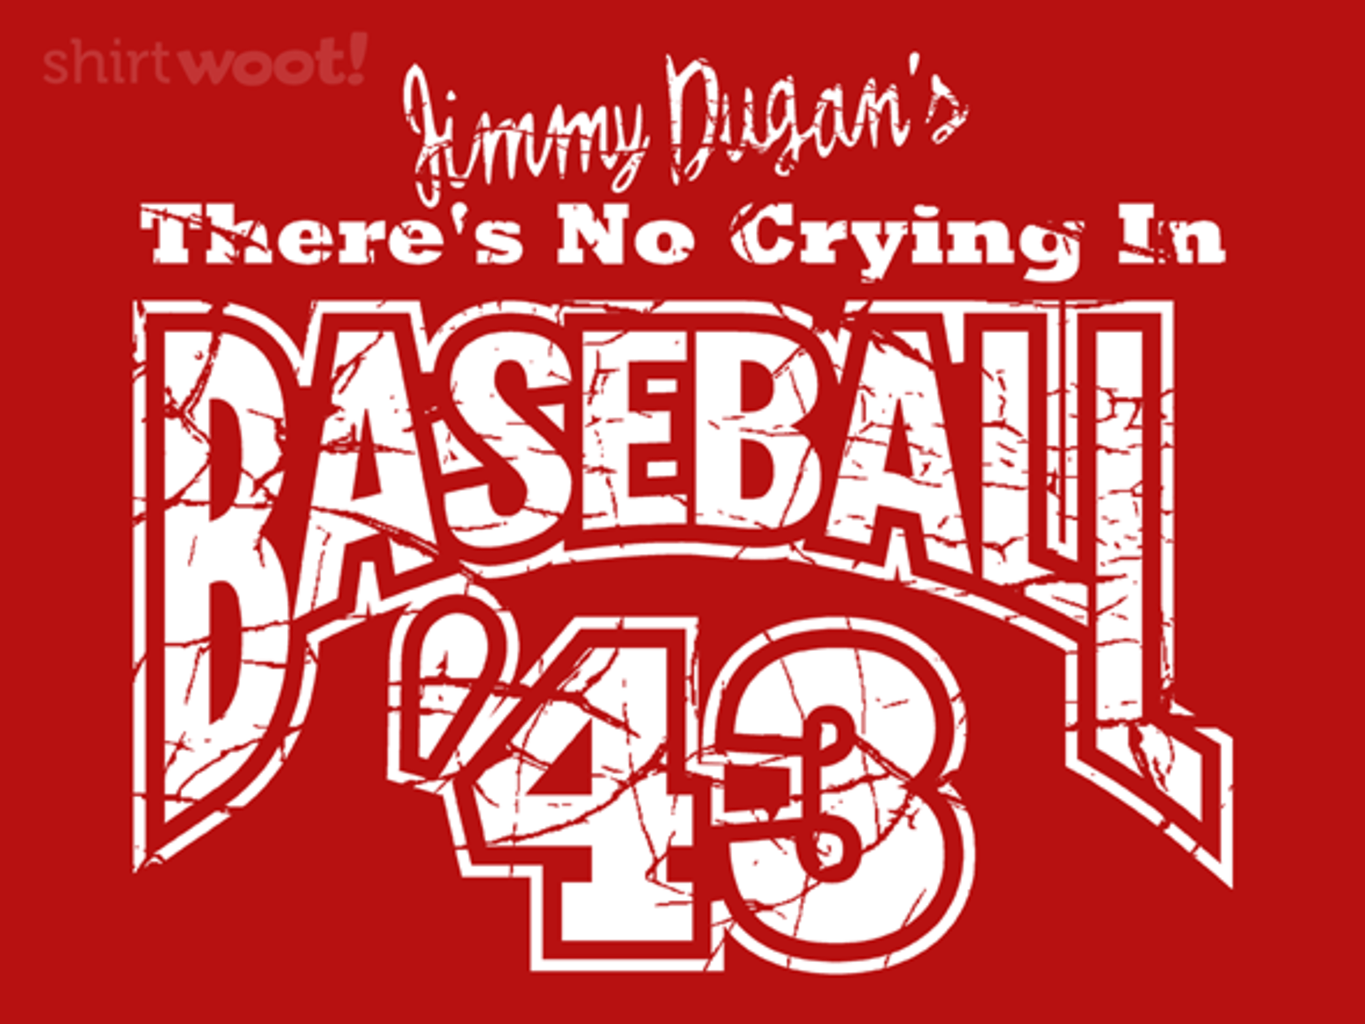 Woot!: No Crying in Baseball '43